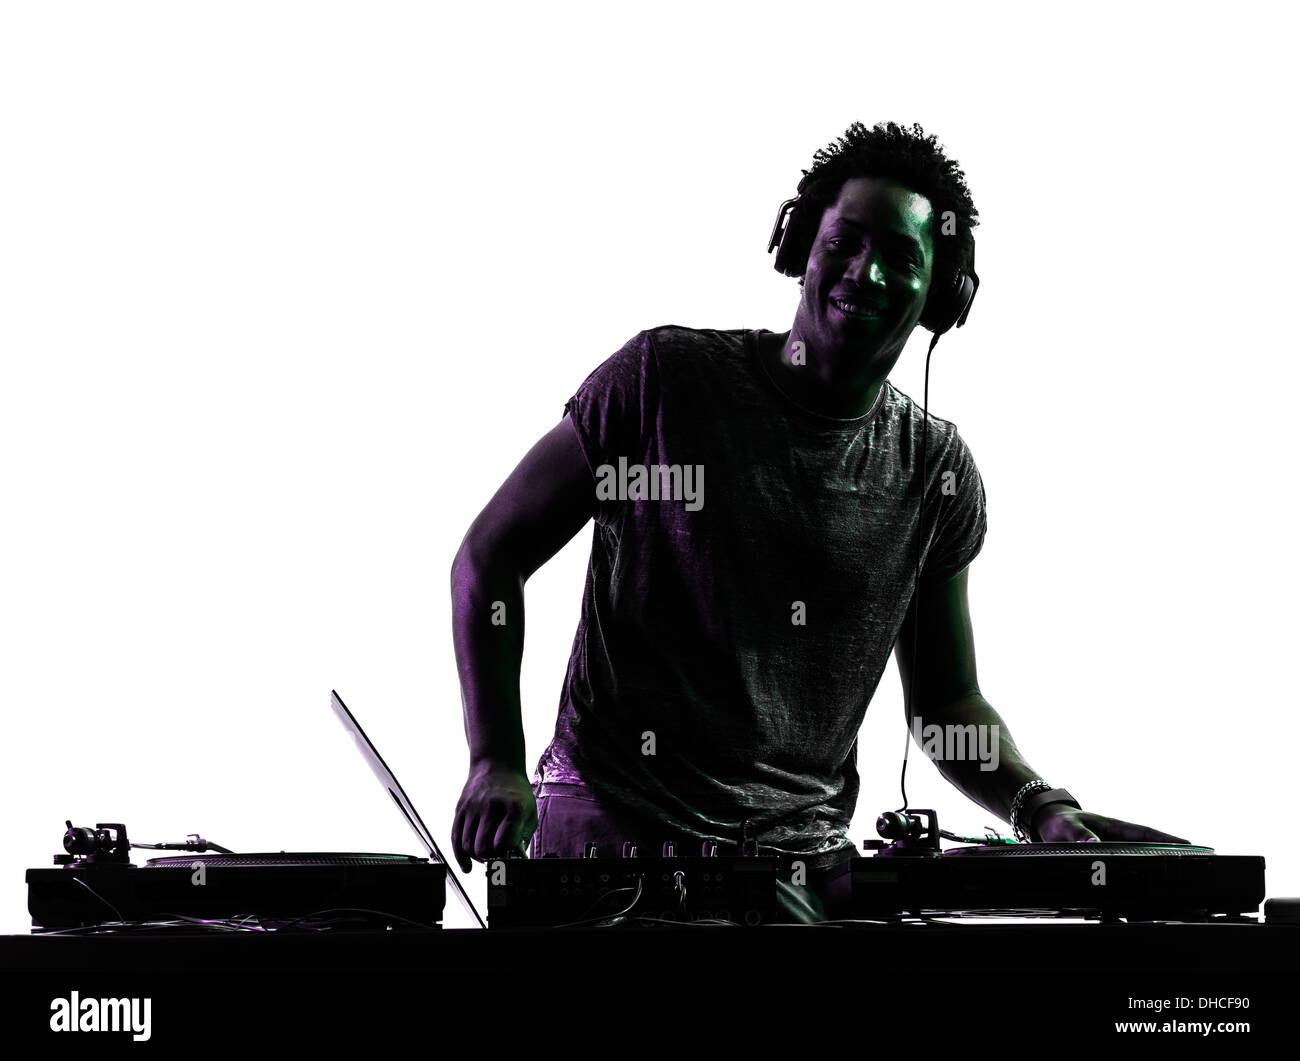 one disc jockey man in silhouette on white background - Stock Image